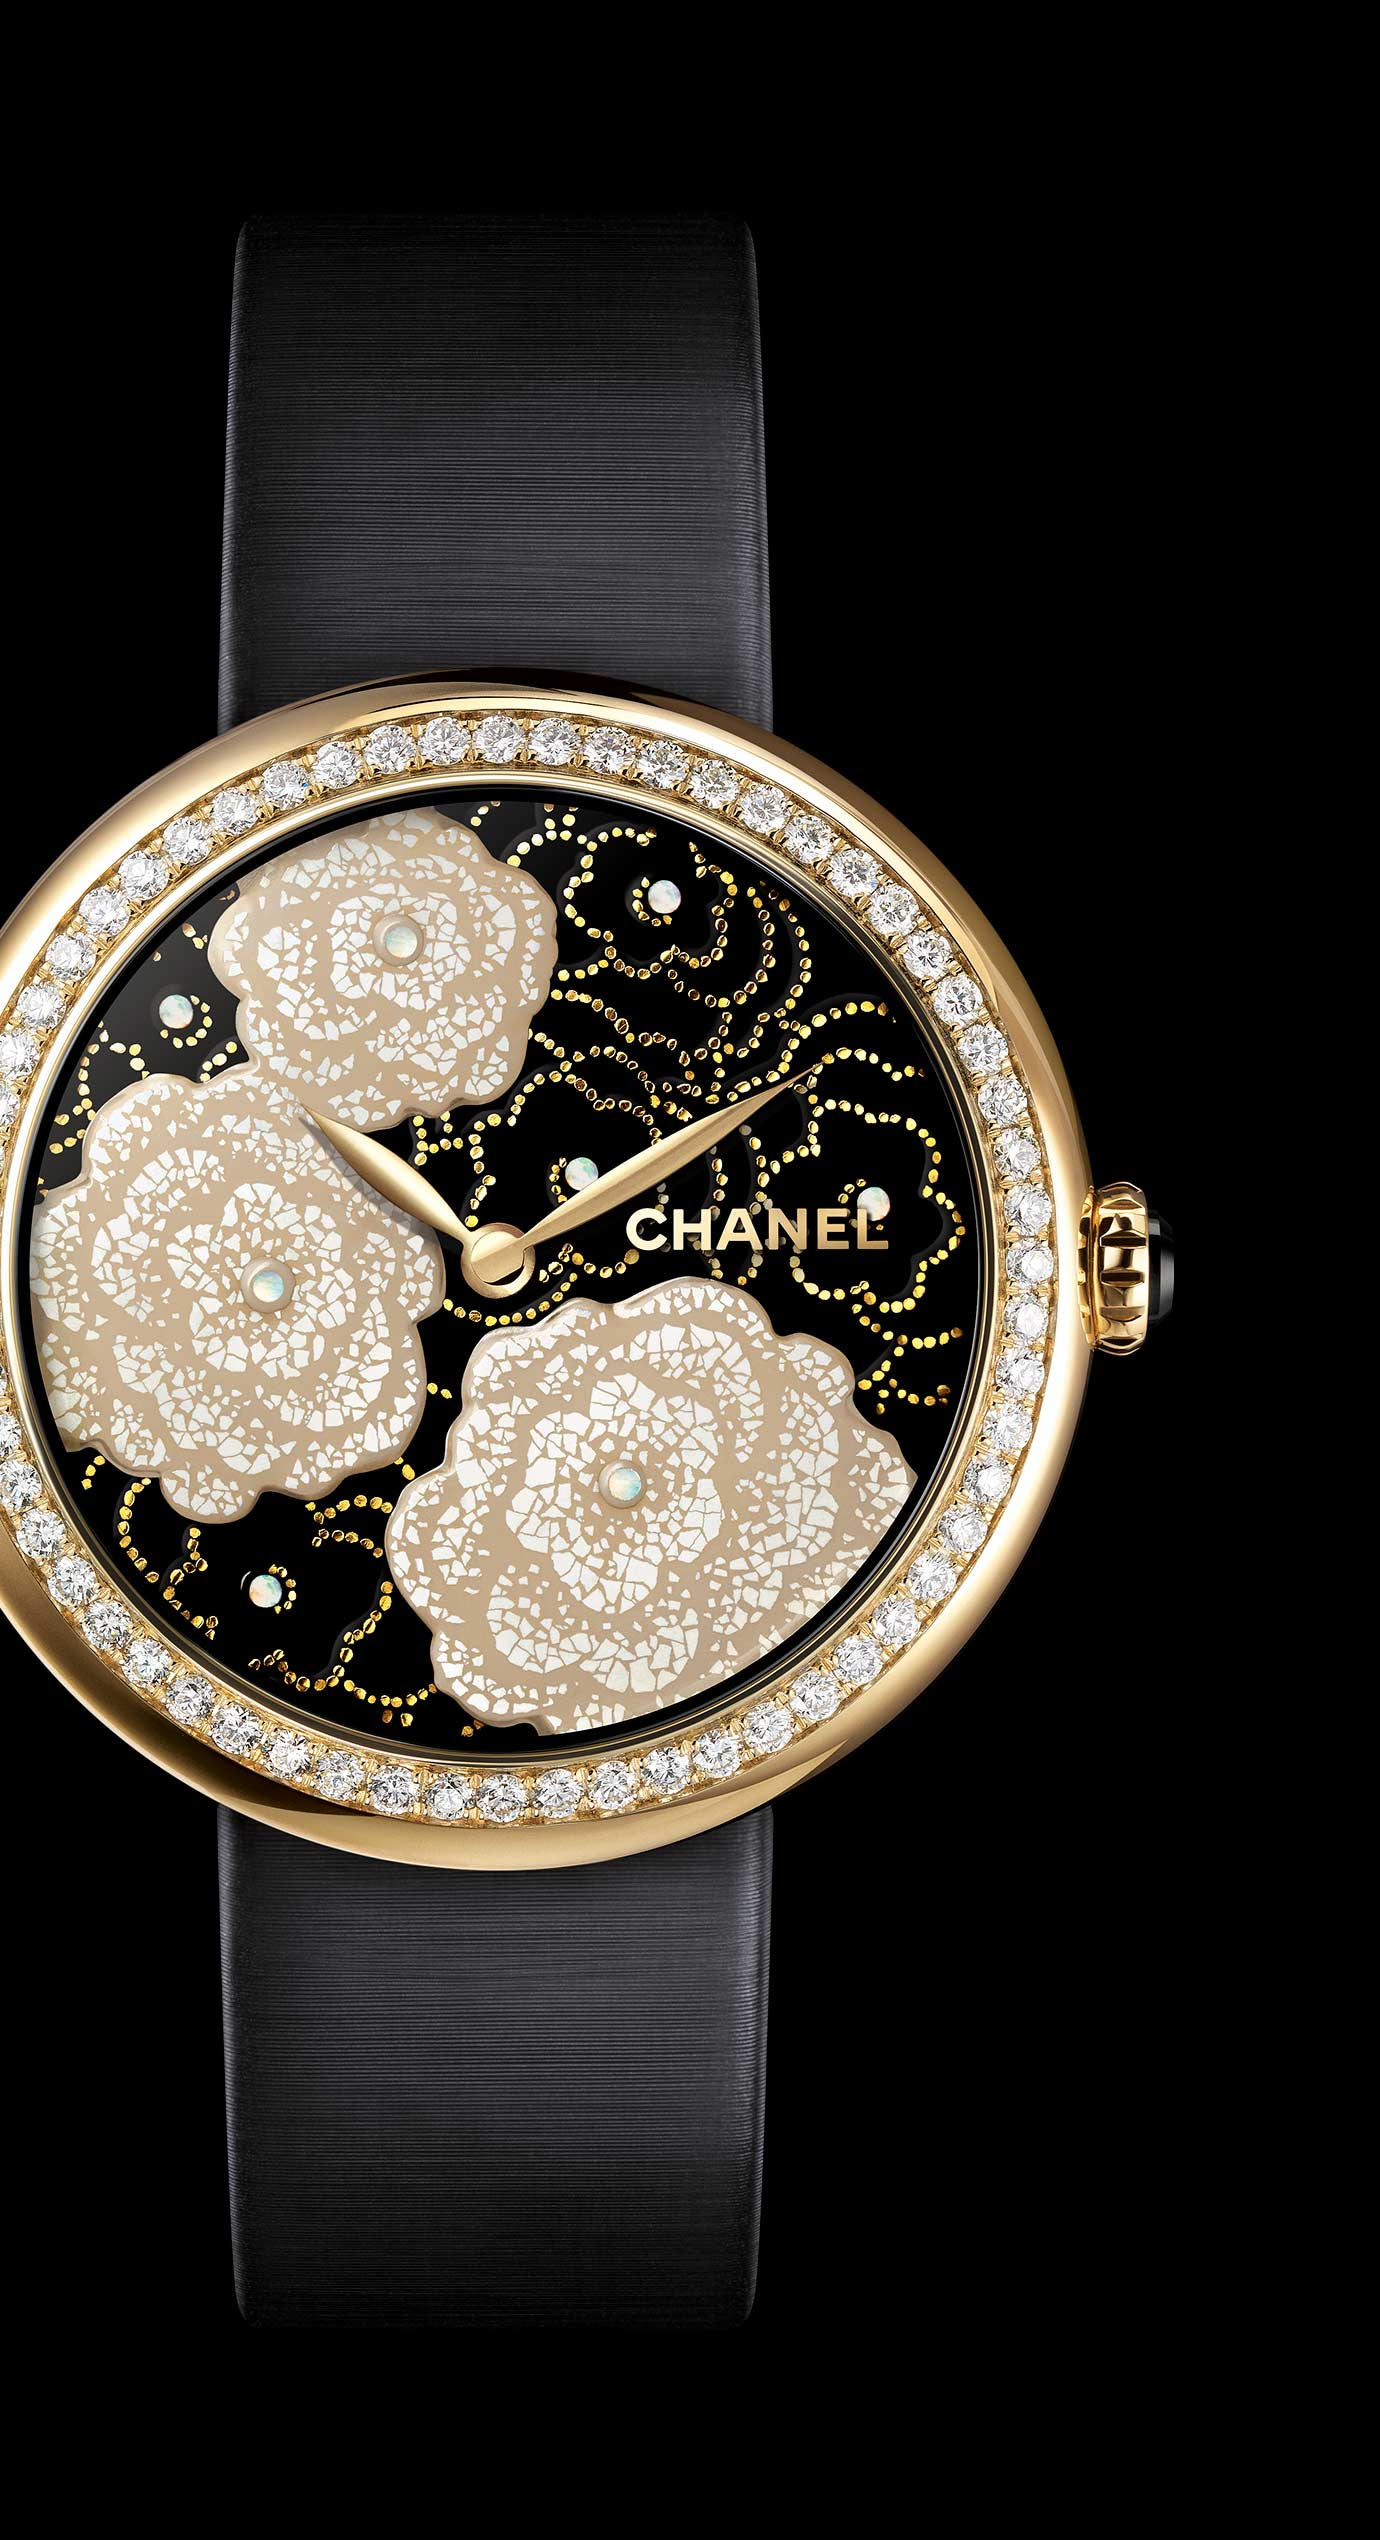 Mademoiselle Privé Camélias watch in yellow gold and quail eggshell, black lacquer dial - Maki-e technique																																							    - Enlarged view